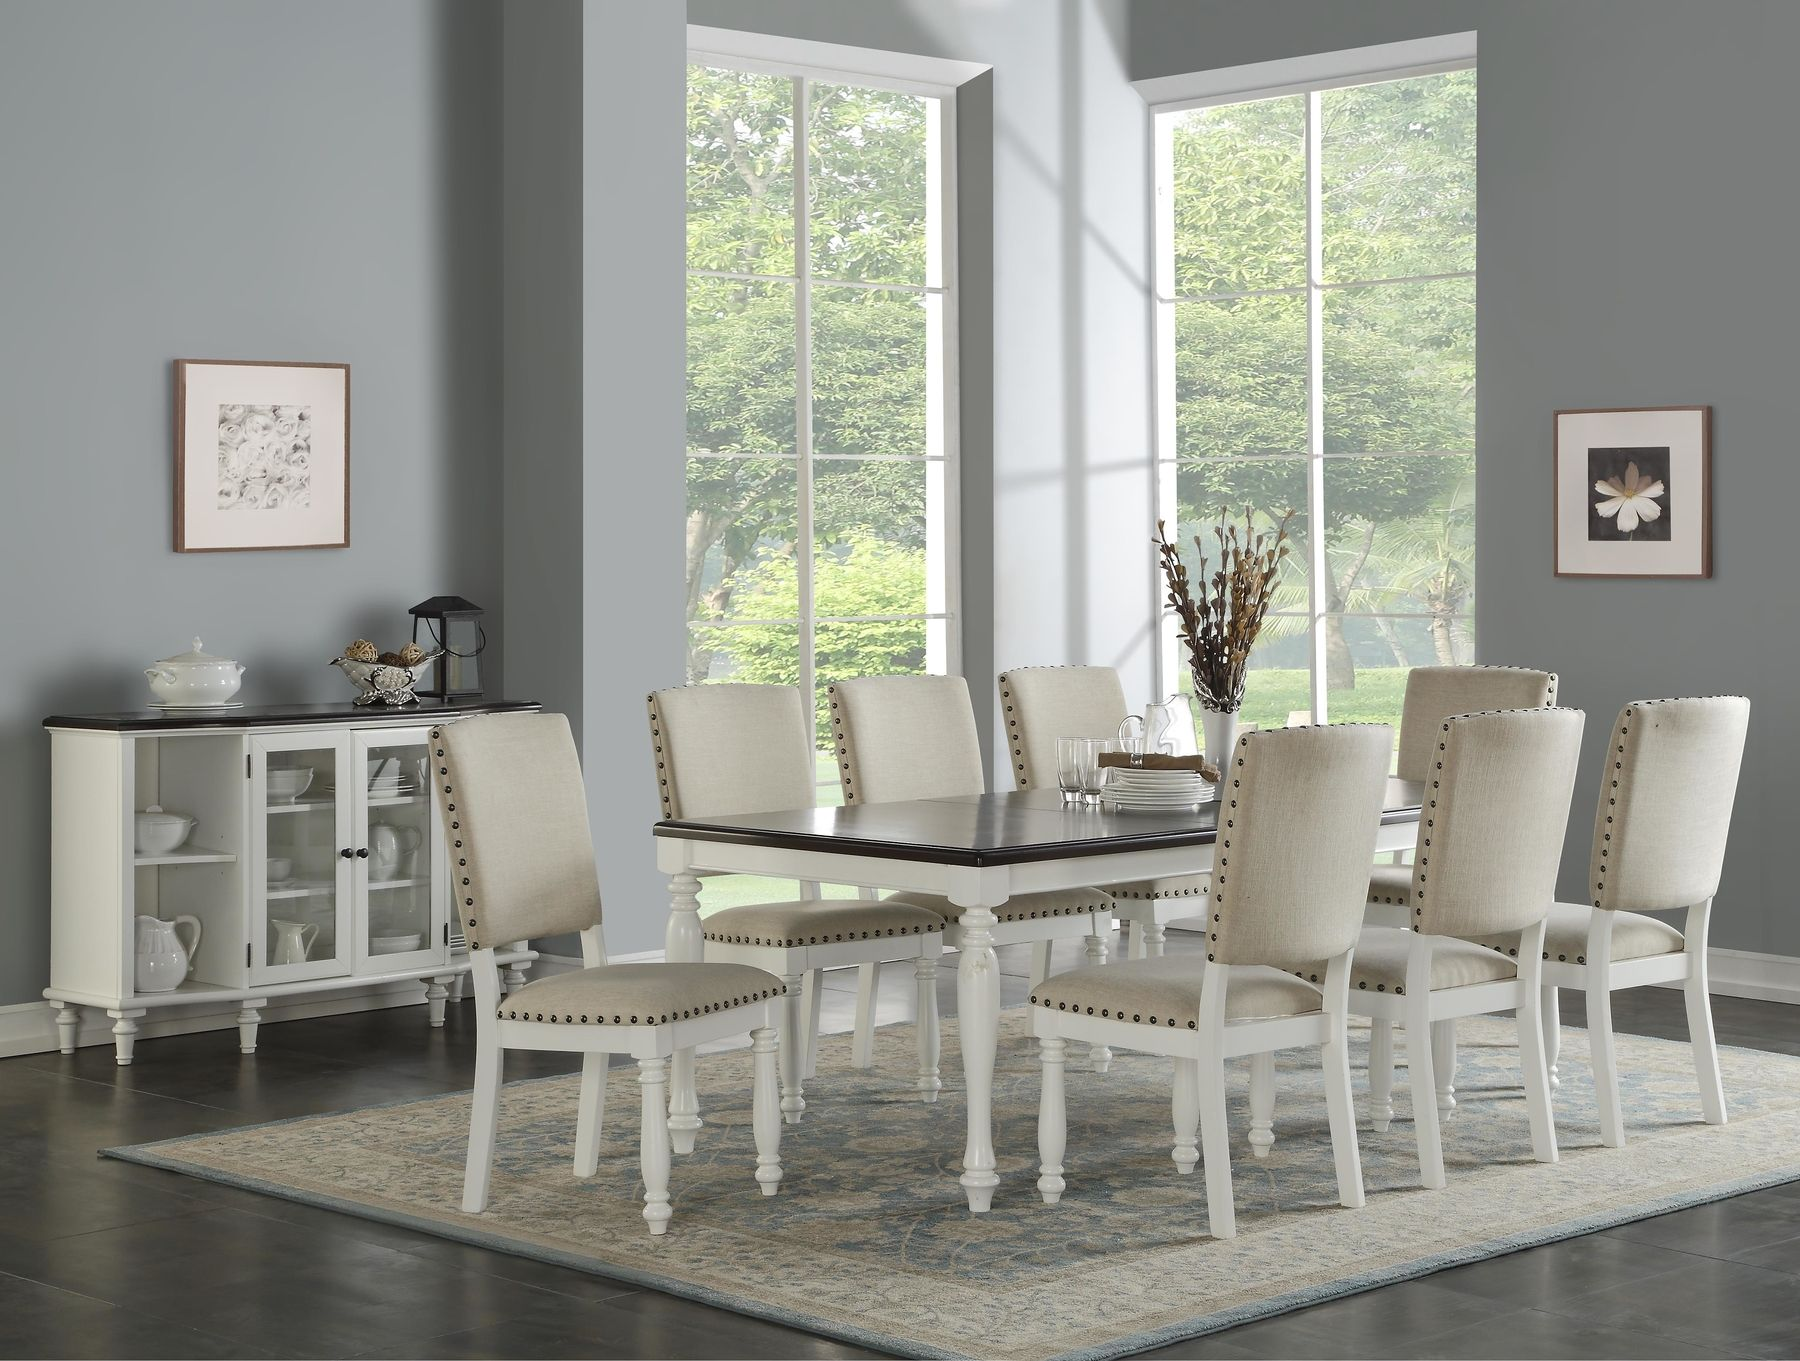 28+ Off white counter height dining set Best Choice